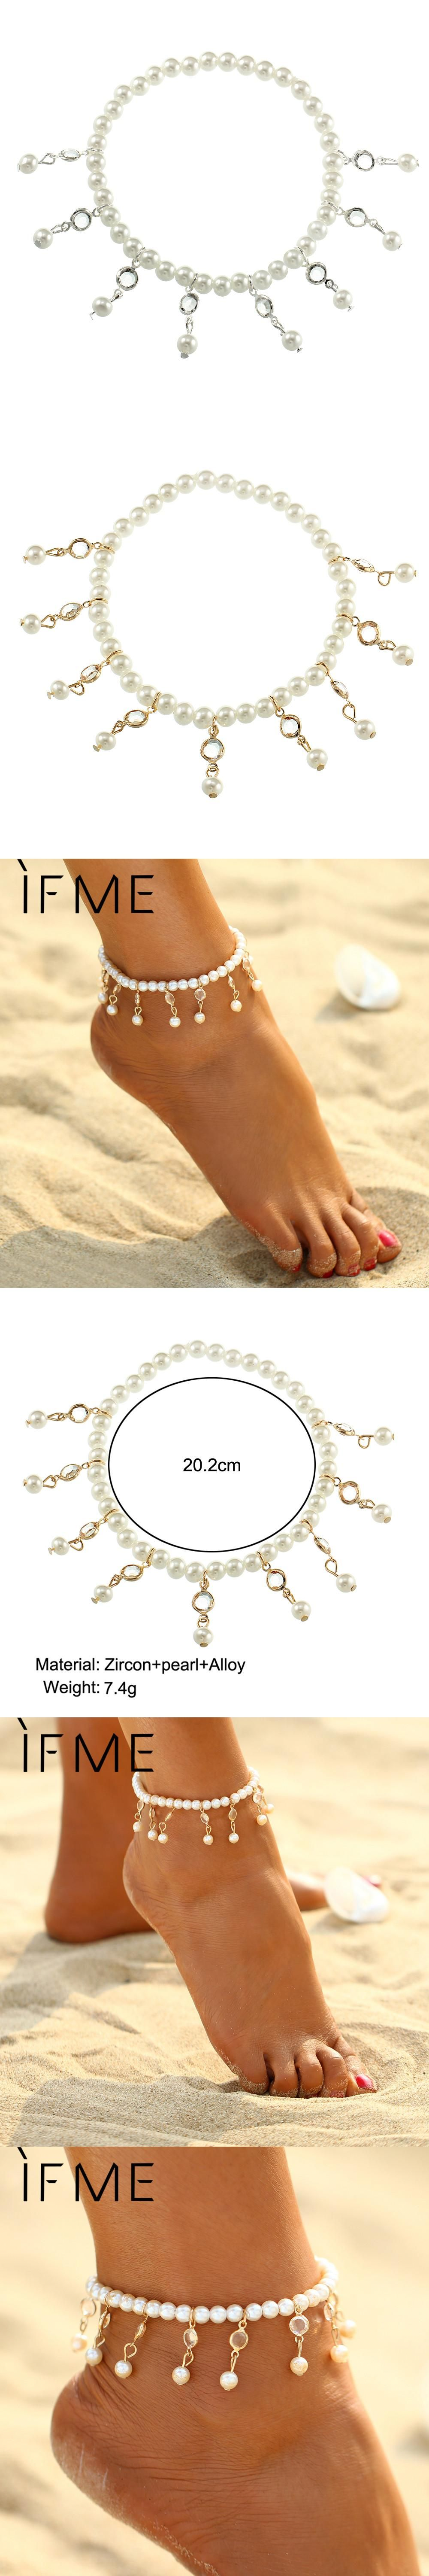 cz jewelry three rhinestone bracelet wedding tennis sexy amazon ankle mbox stretch anklet crystal row com dp